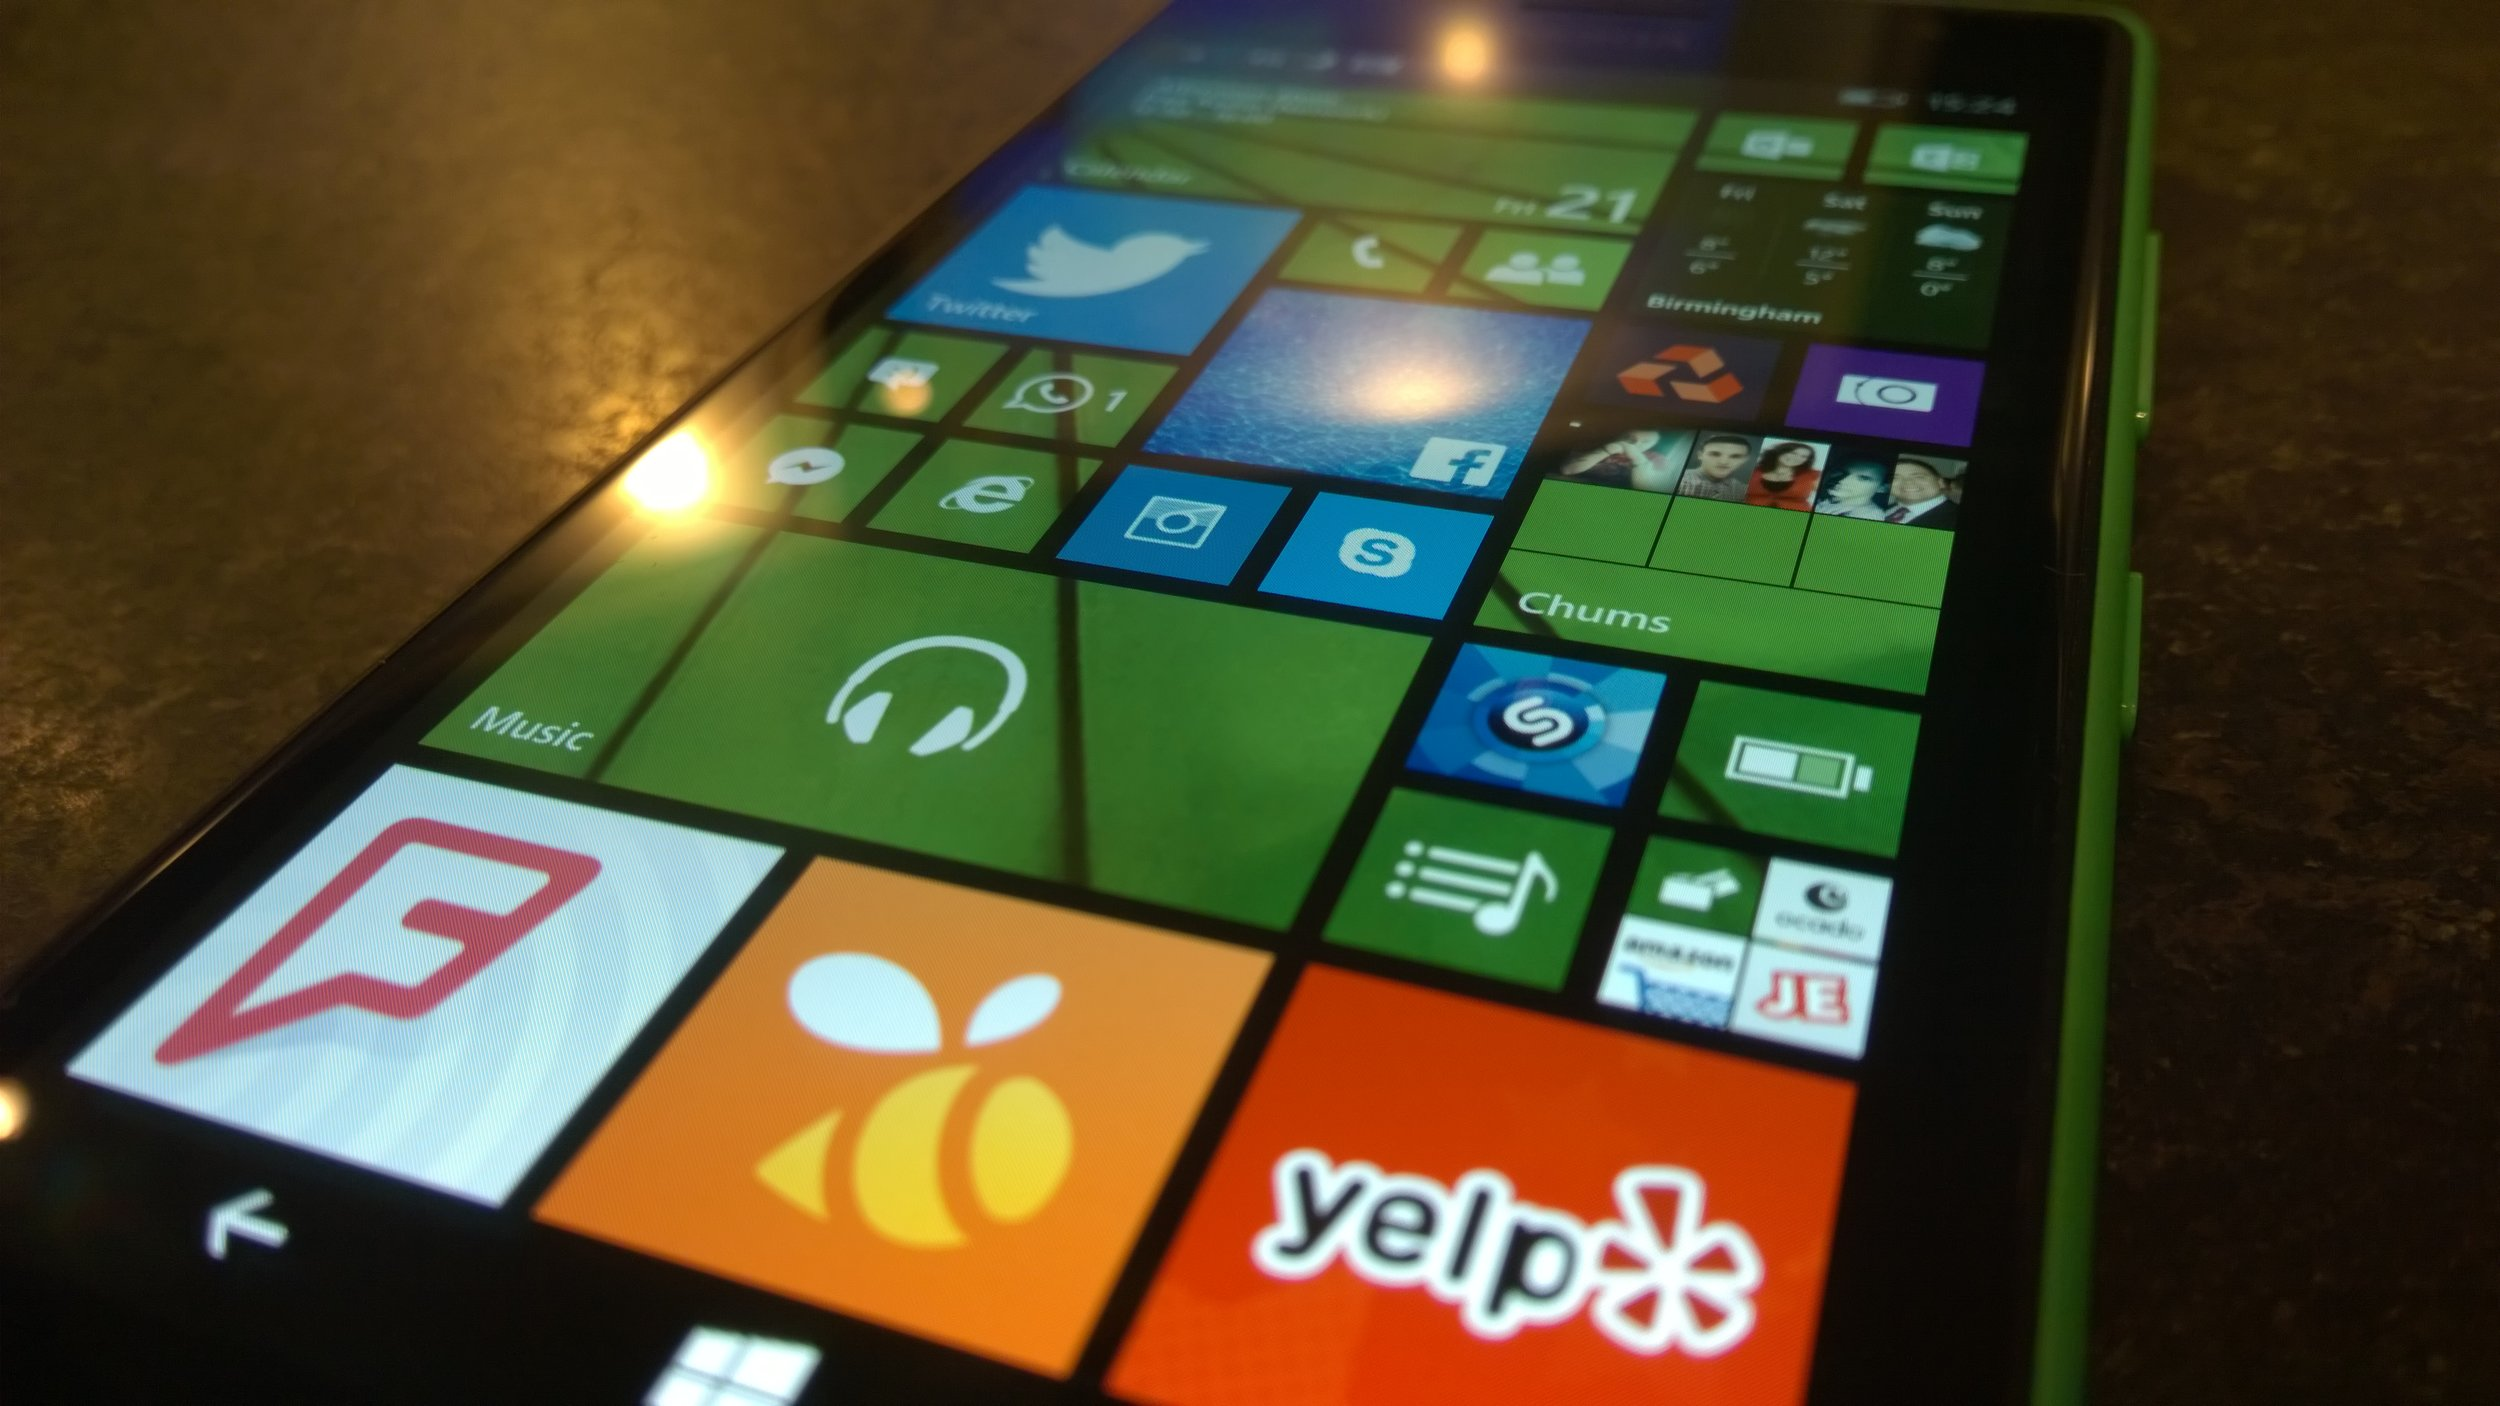 Lumia 735 Screen is bright, vivid and clear.